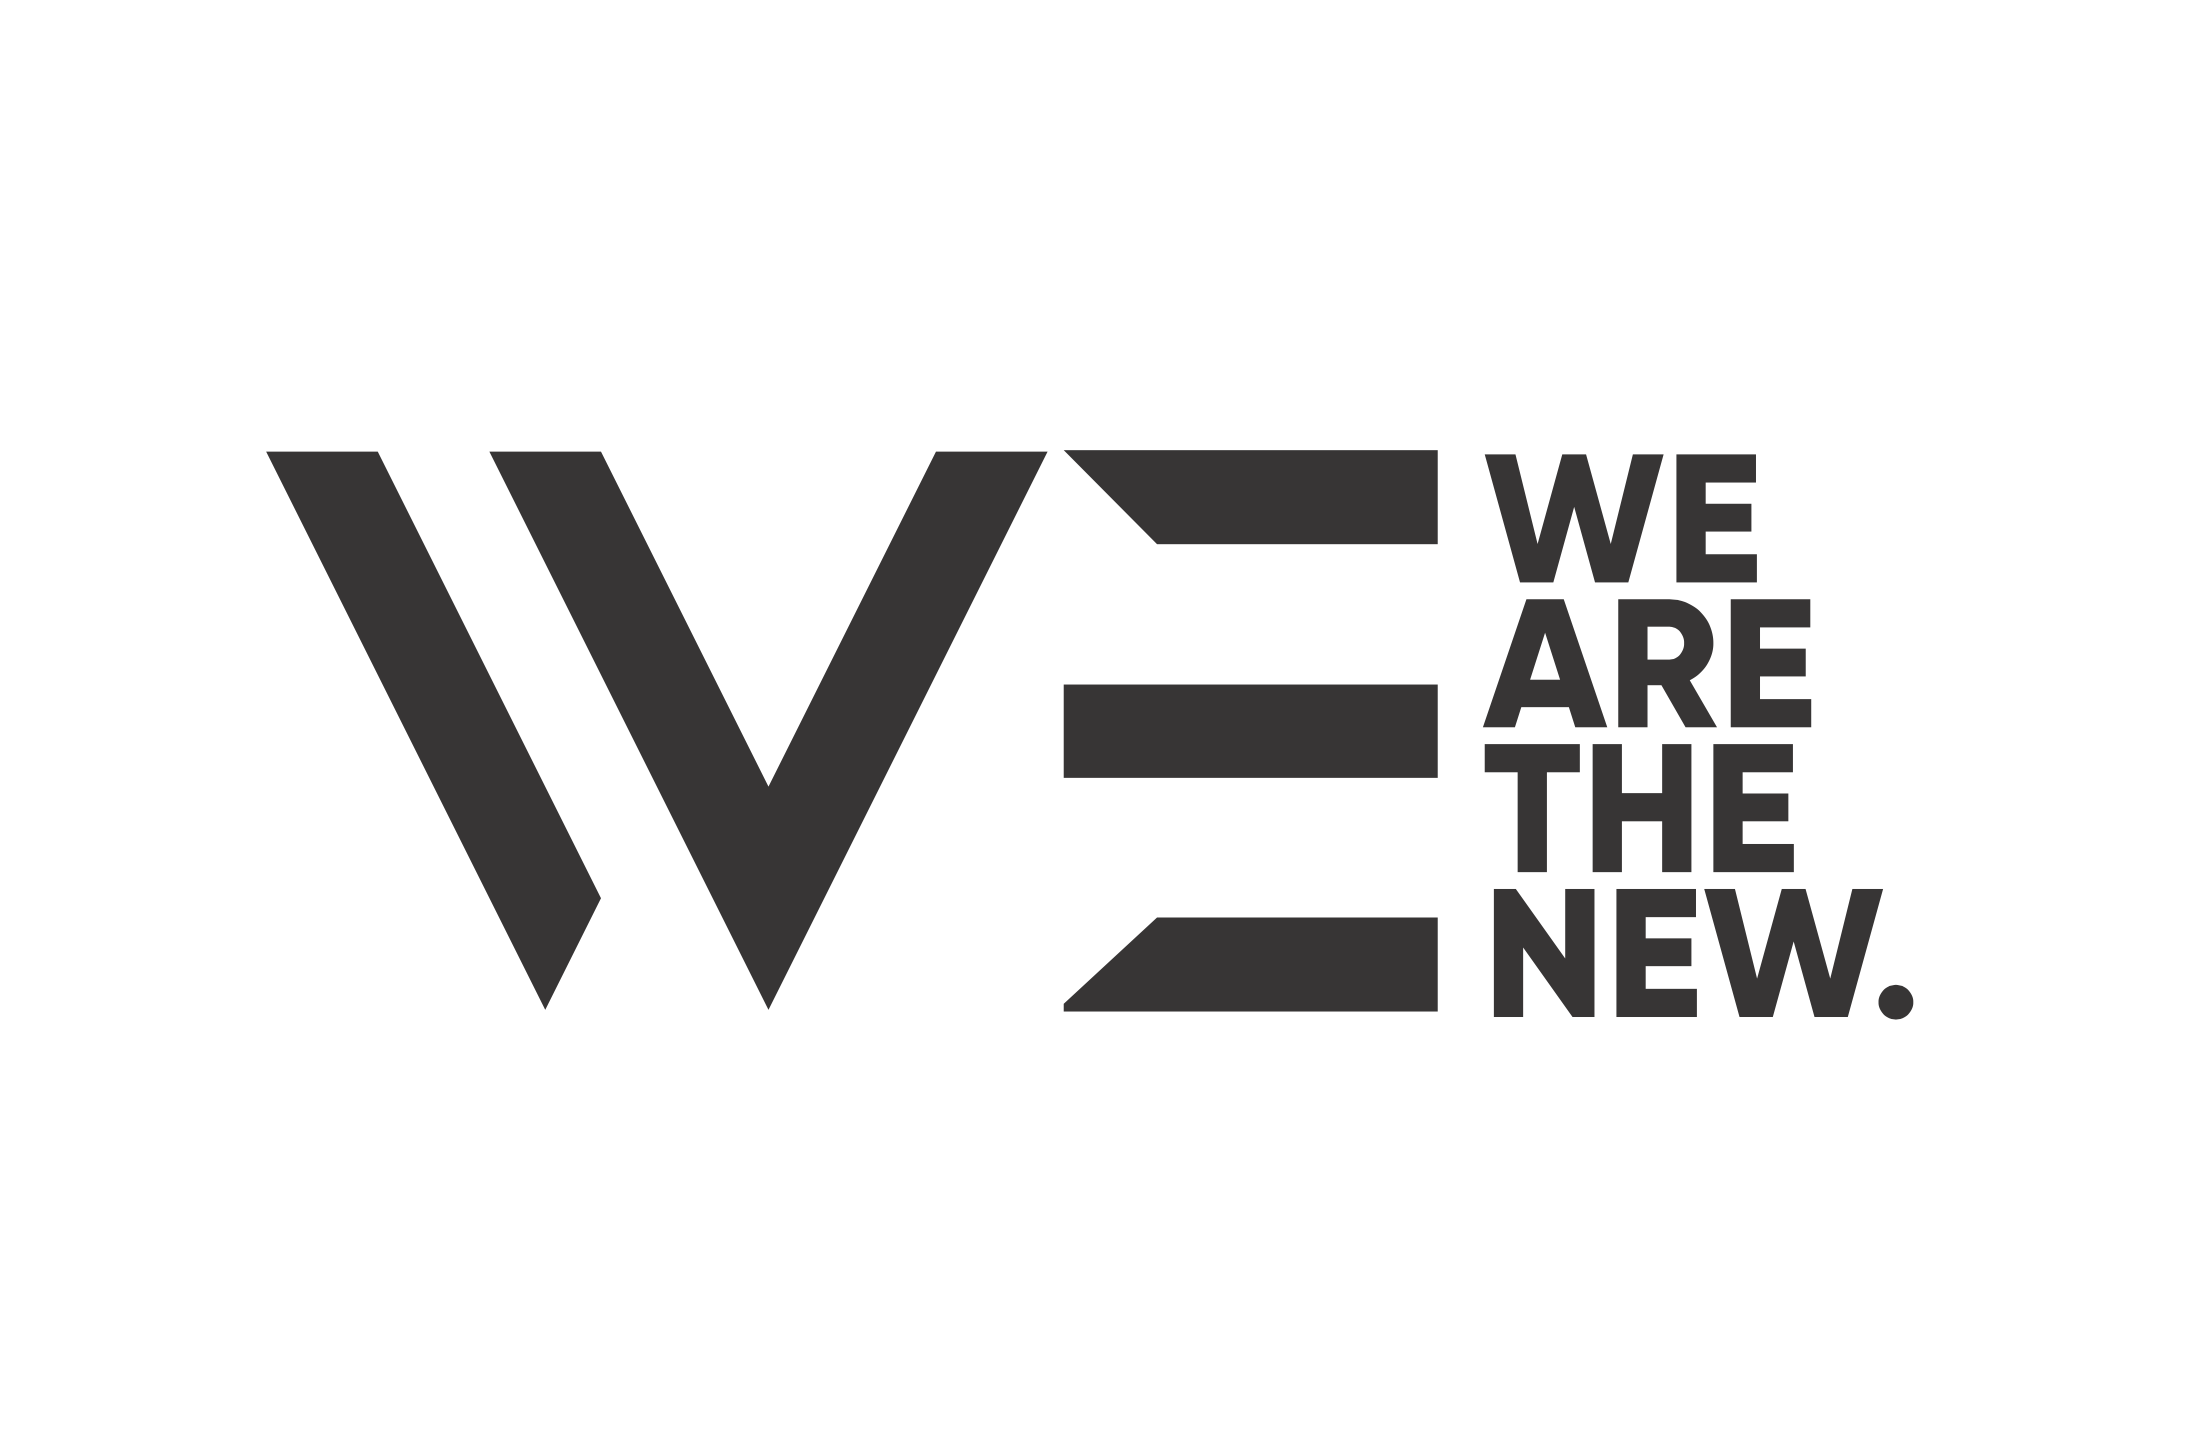 WE ARE THE NEW